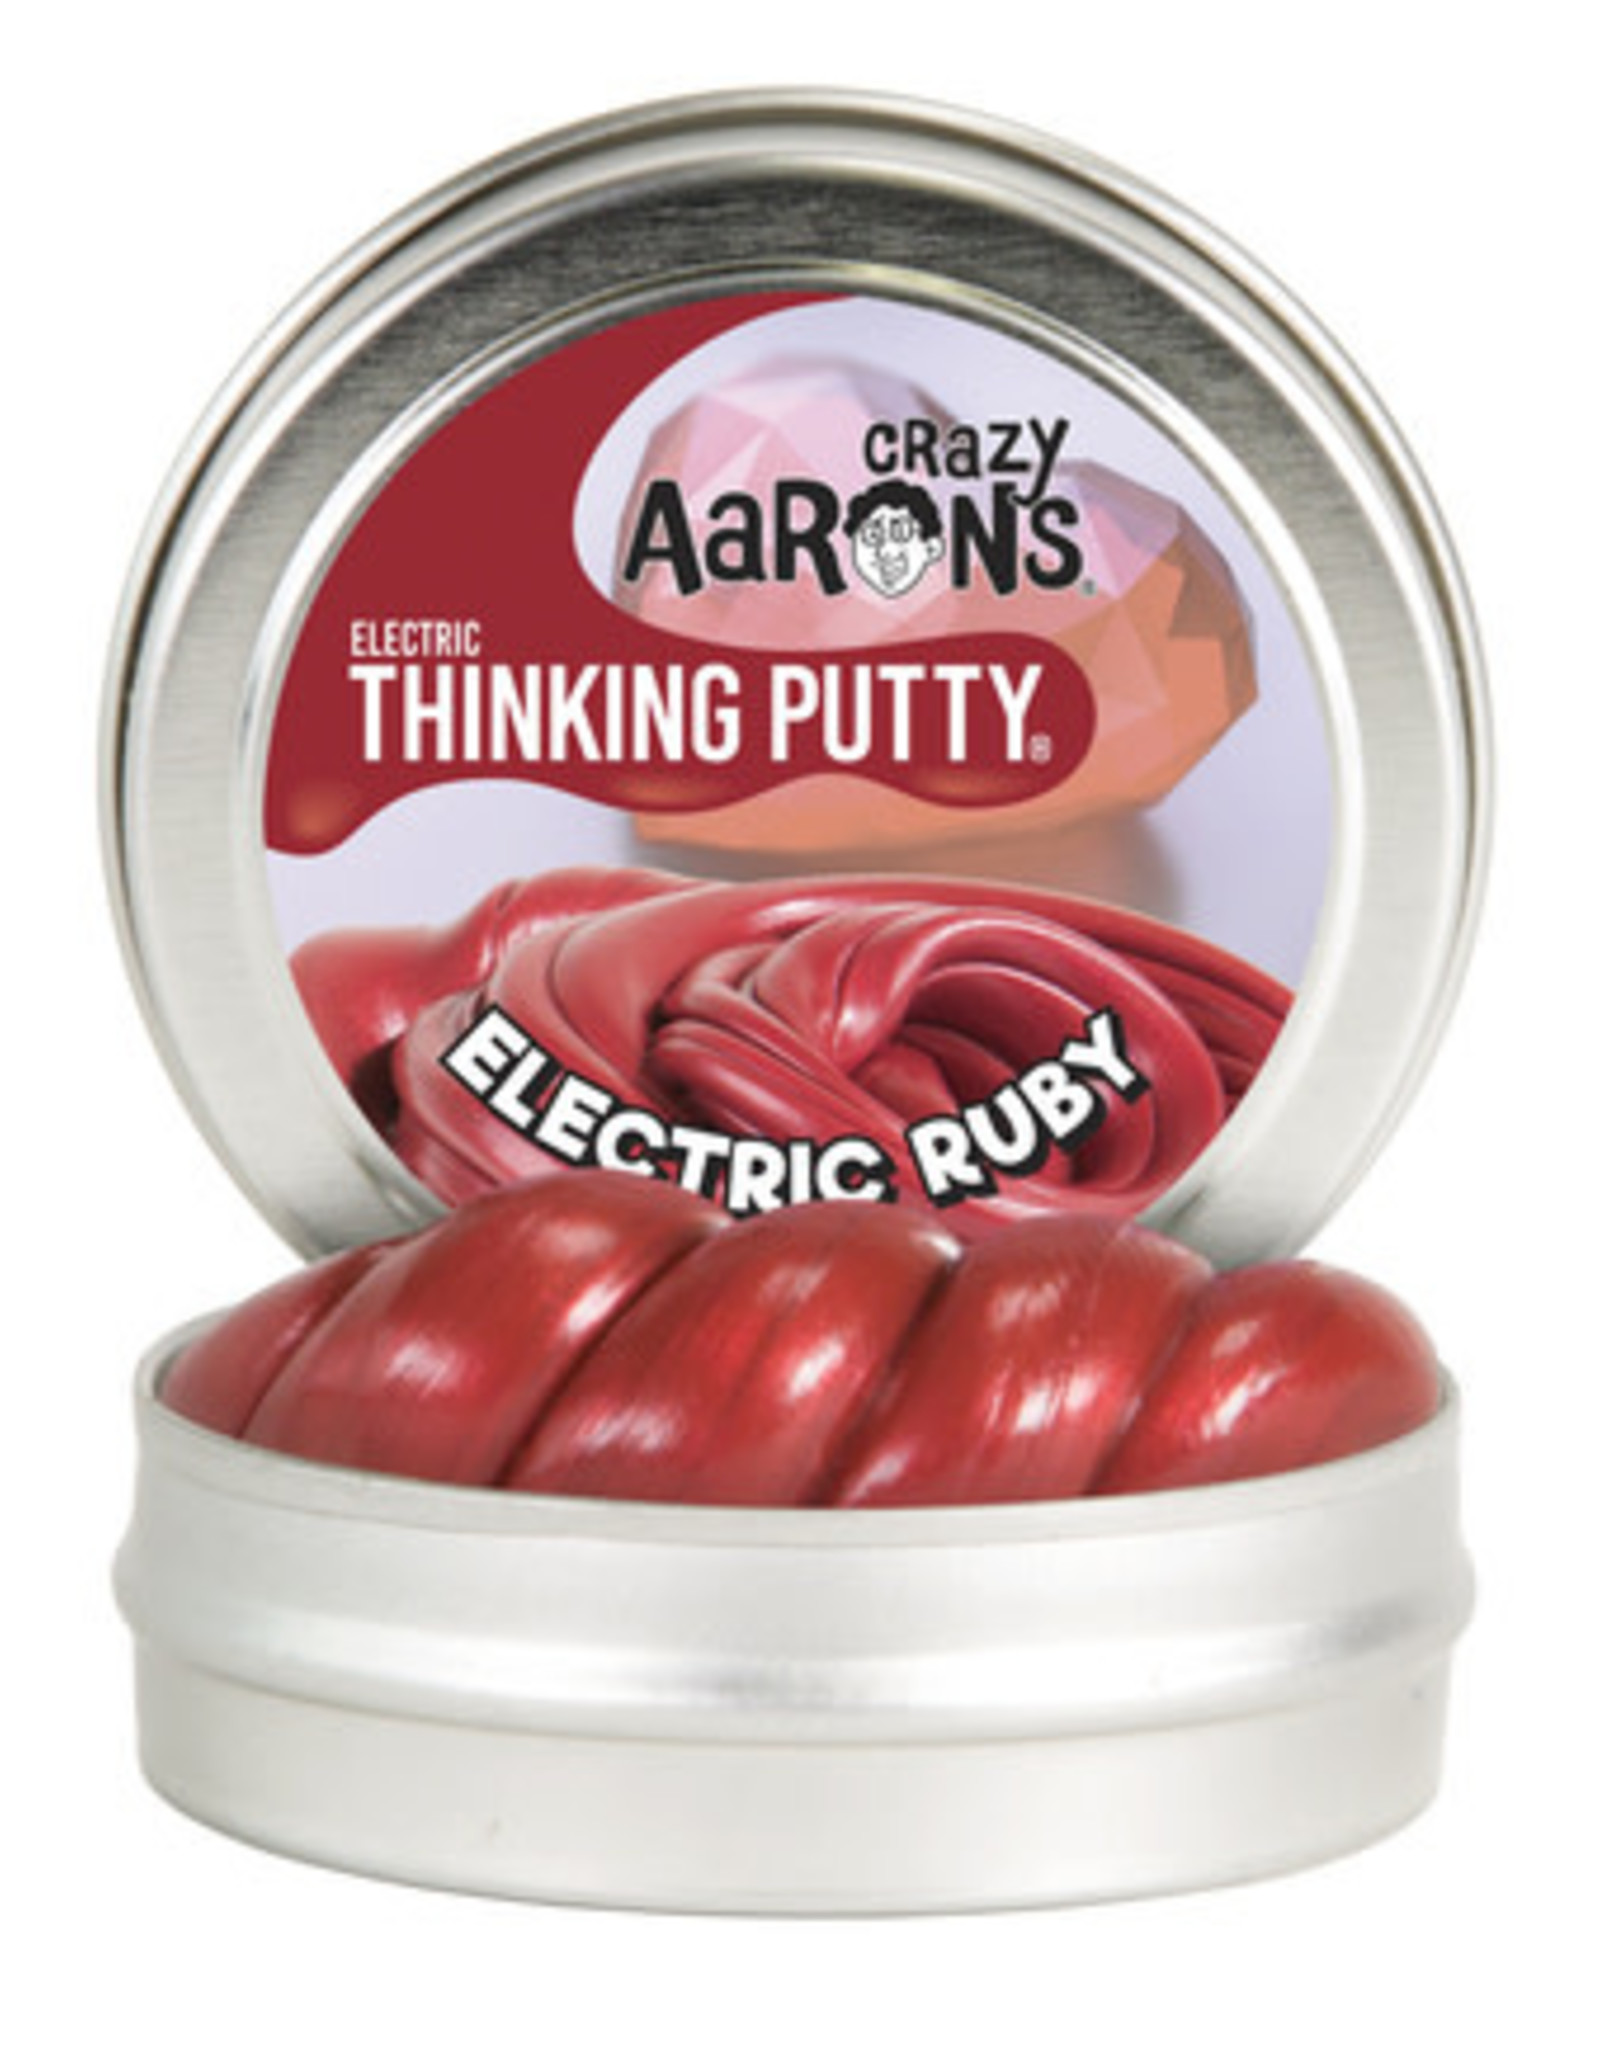 Crazy Aaron's Thinking Putty Small Tin - Electric Ruby